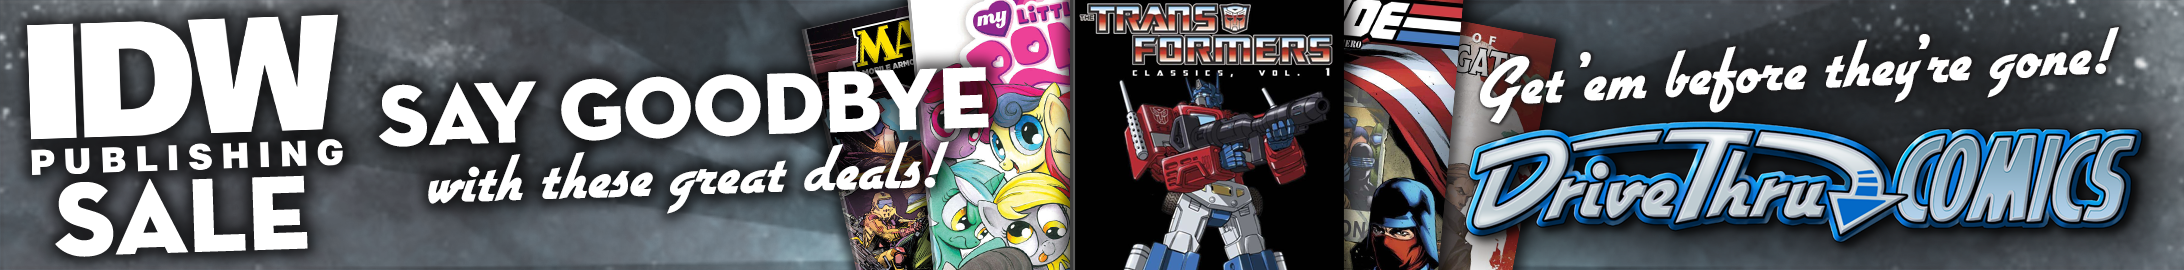 IDW Goodbye Sale